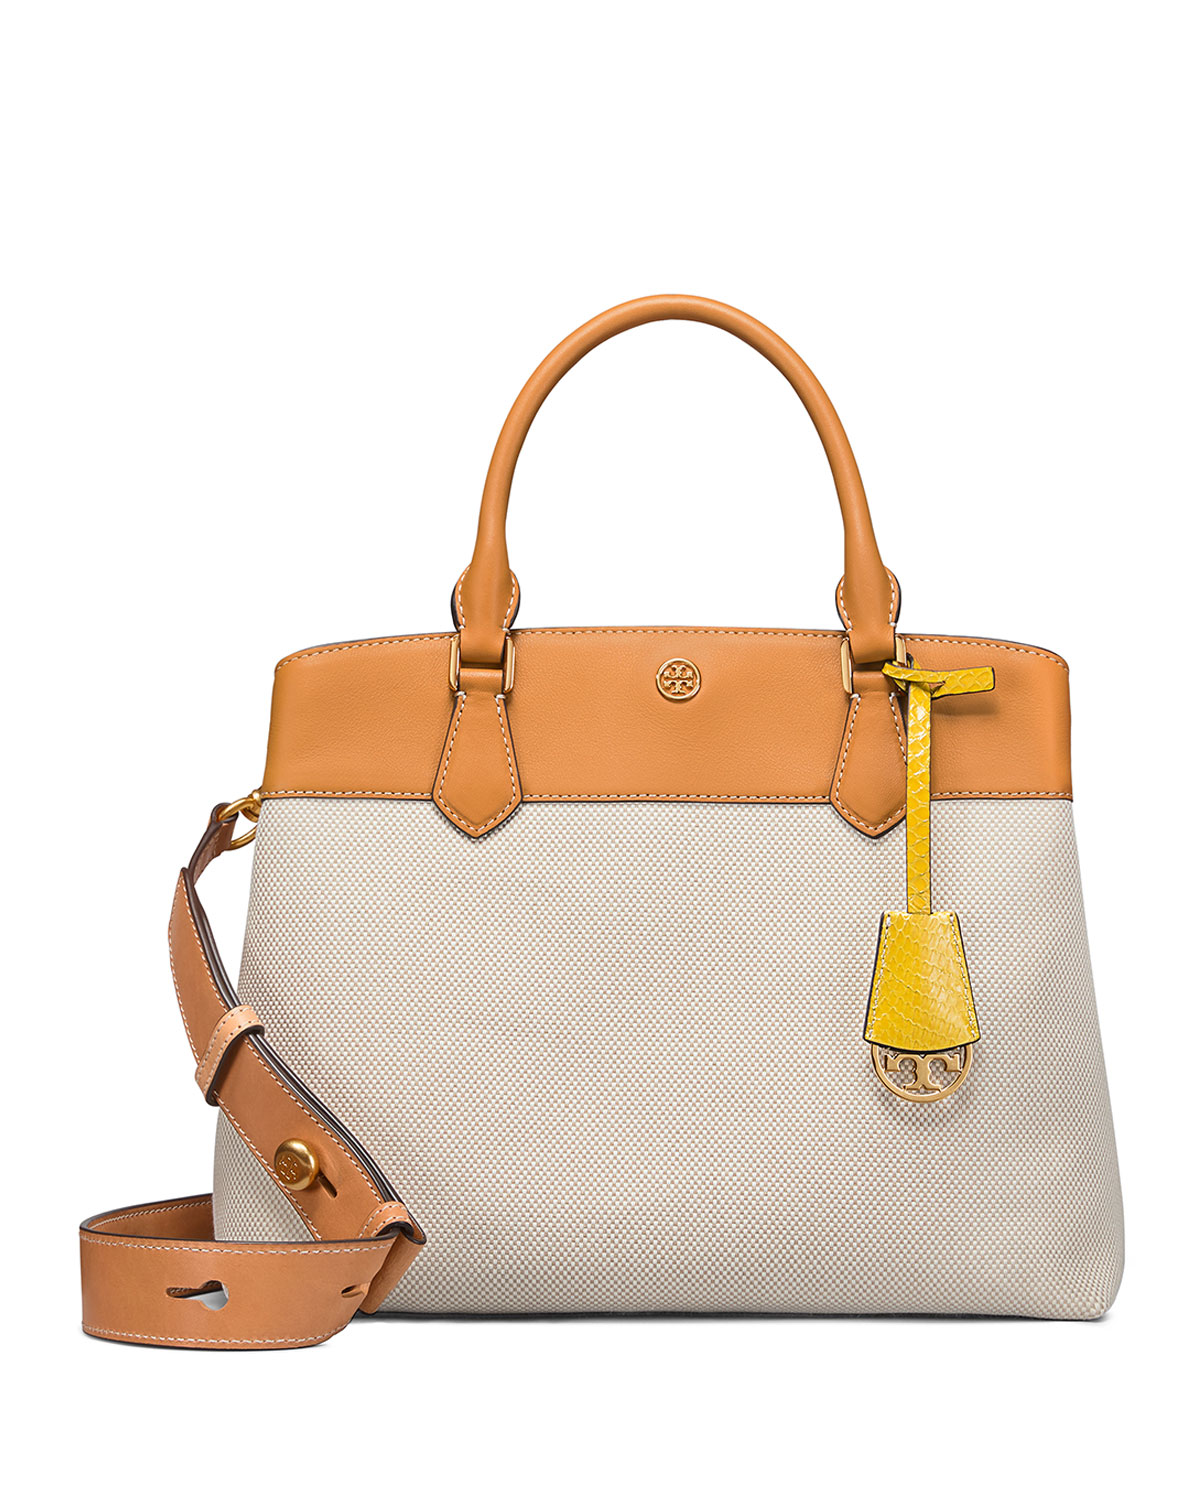 Tory BurchRobinson Canvas Leather 3-Compartment Tote Bag.  458.00.  100 Off  with your ... c2fbf9f84fa68